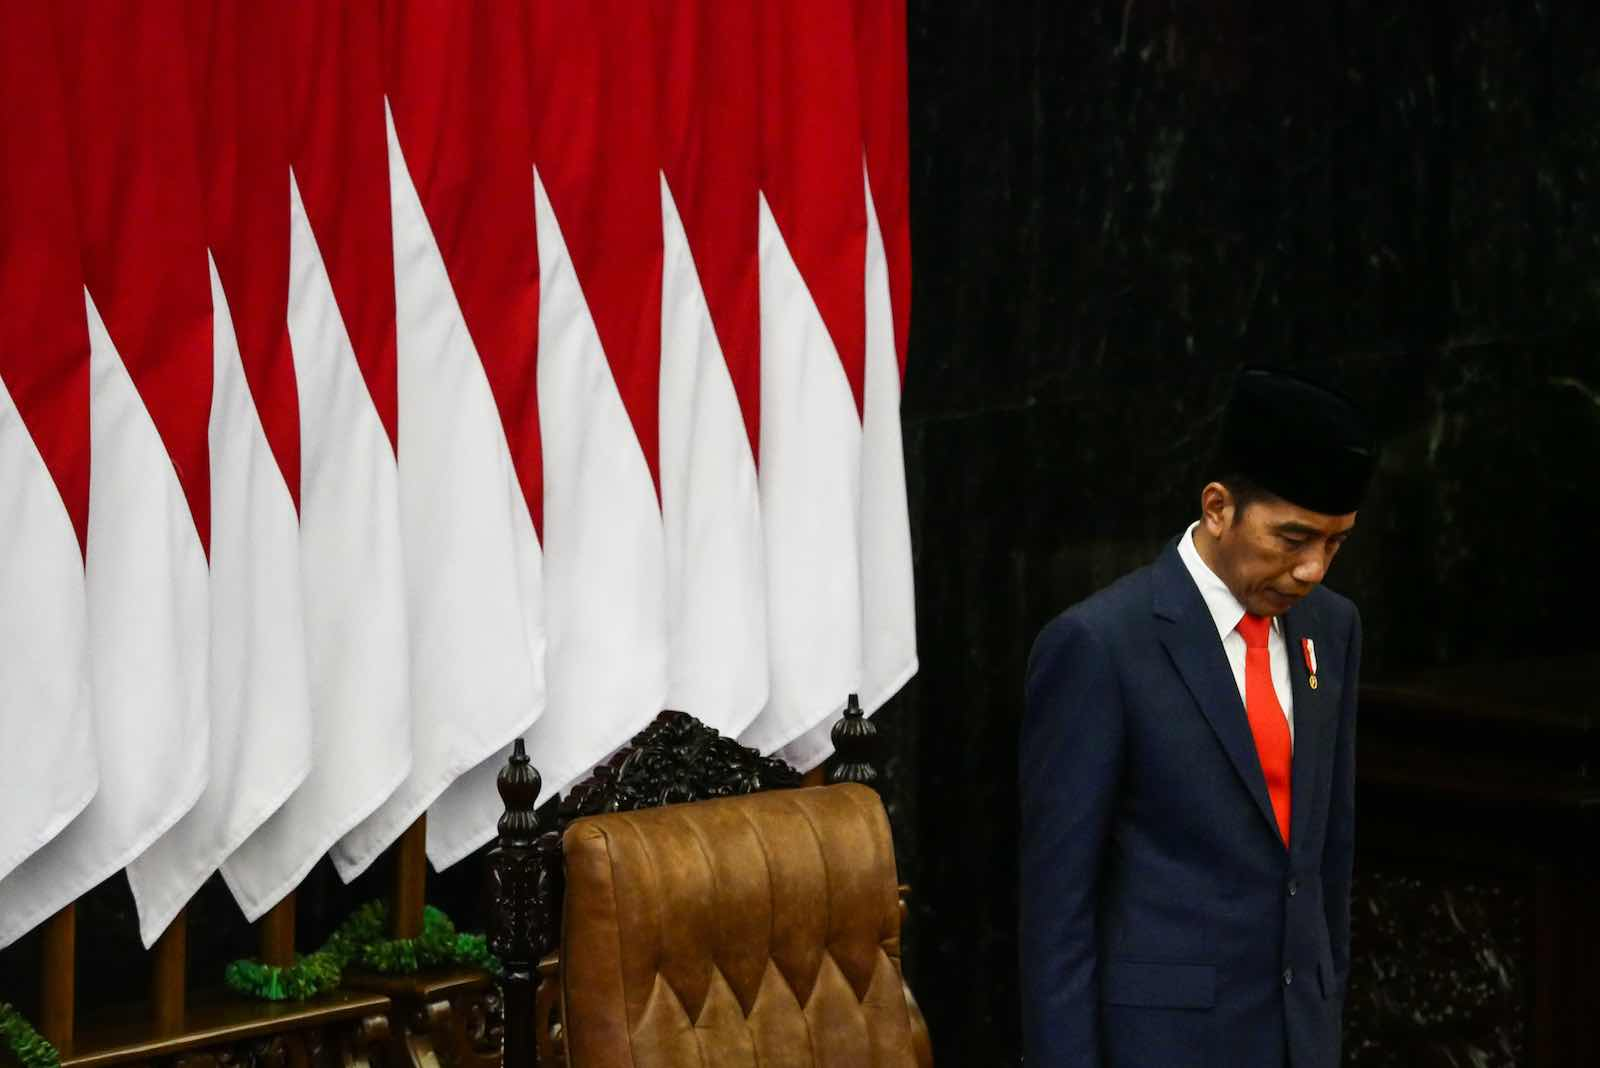 """Once dubbed """"a new hope"""" for democracy, Joko Widodo has instead presided over a period of democratic stagnation and regression, according to many (Anton Raharjo/NurPhoto via Getty Images)"""